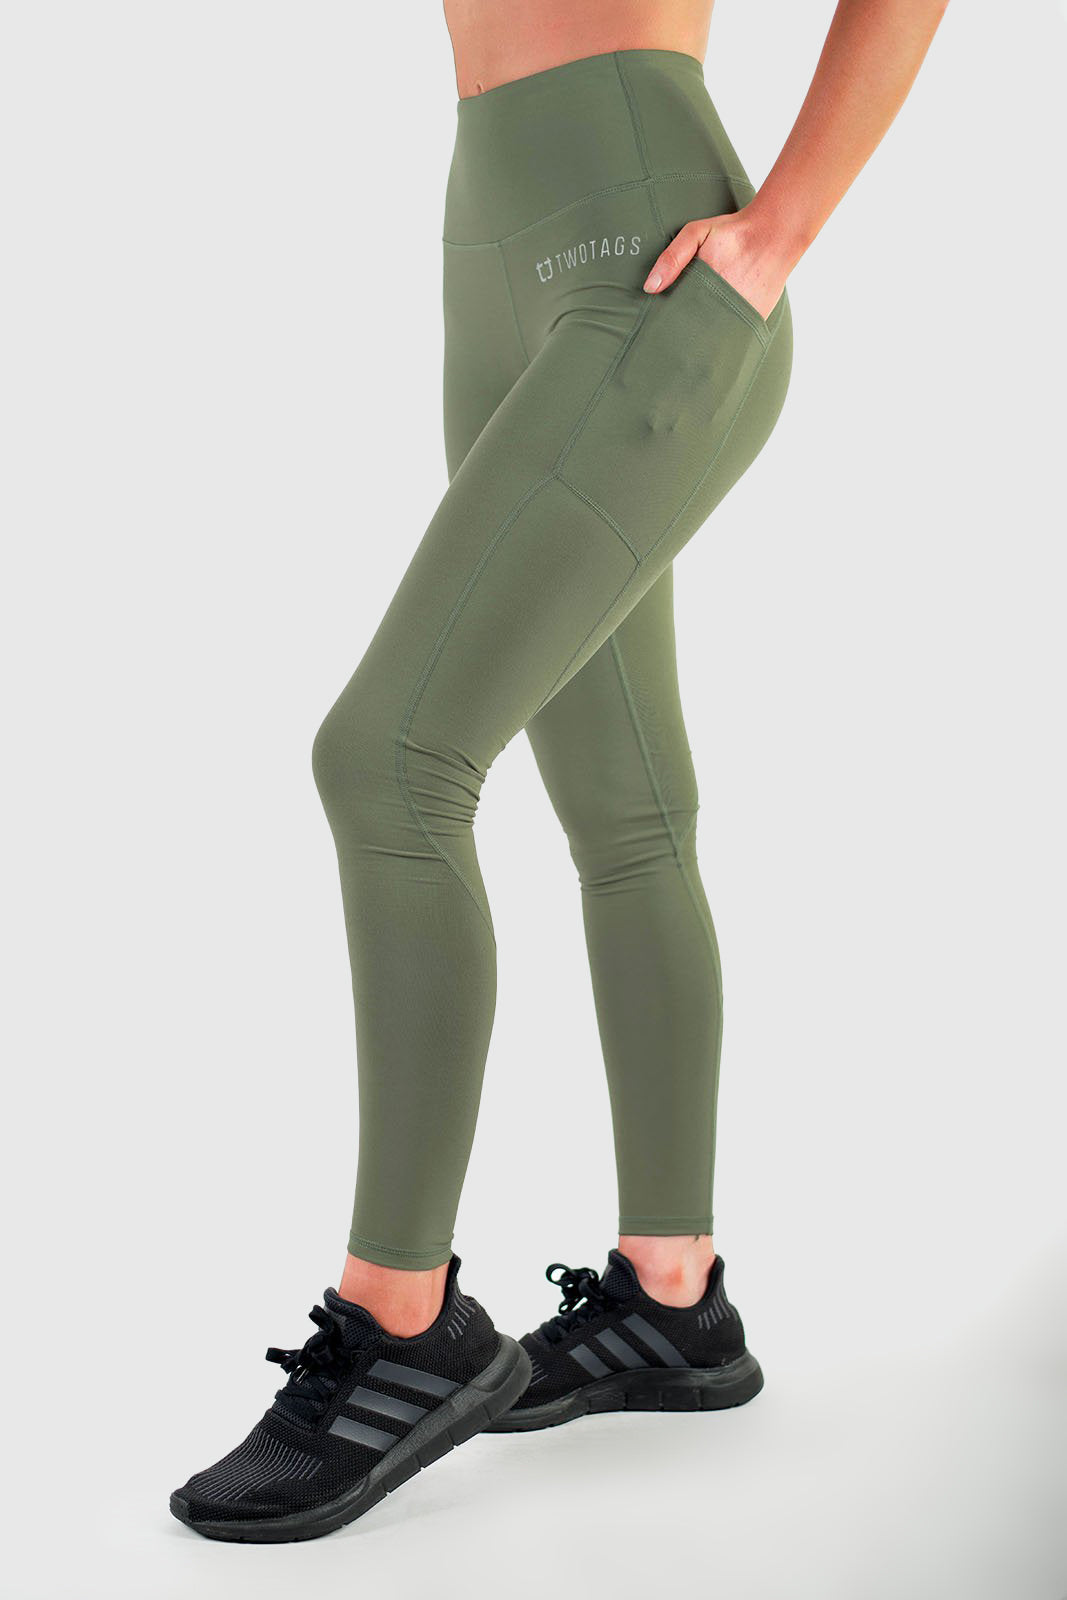 a7812a2ad9c34 Sweetheart Highwaisted Leggings - Olive – Twotags